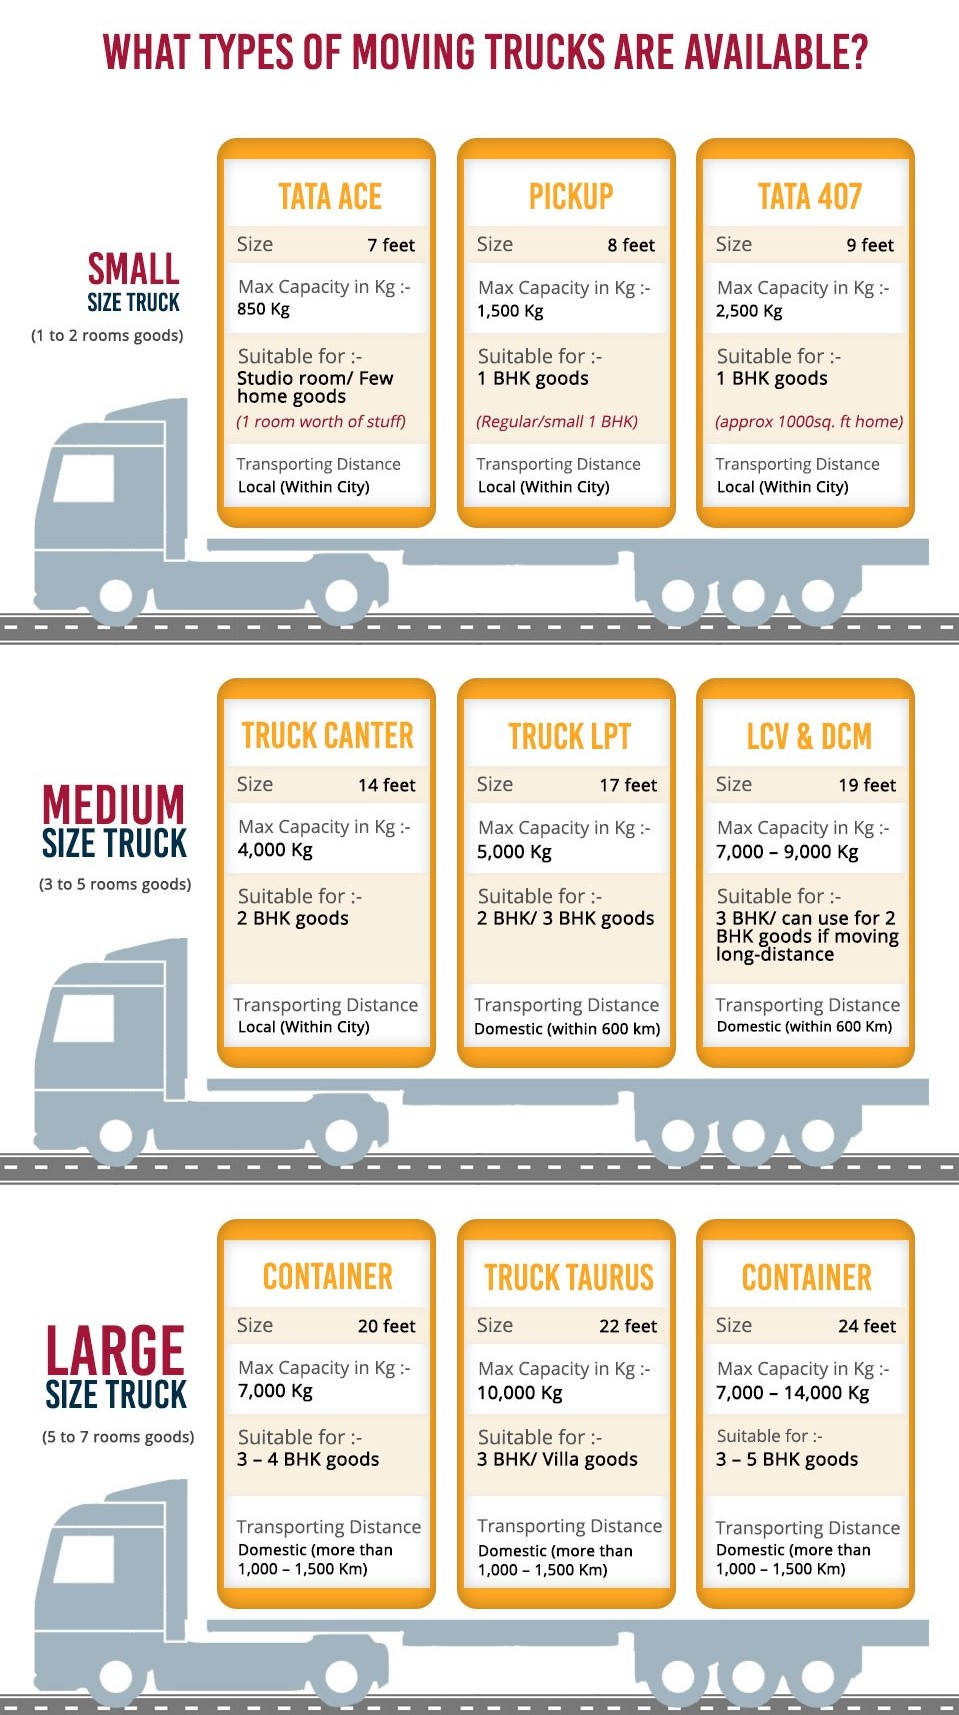 What Types Of Moving Trucks Are Available